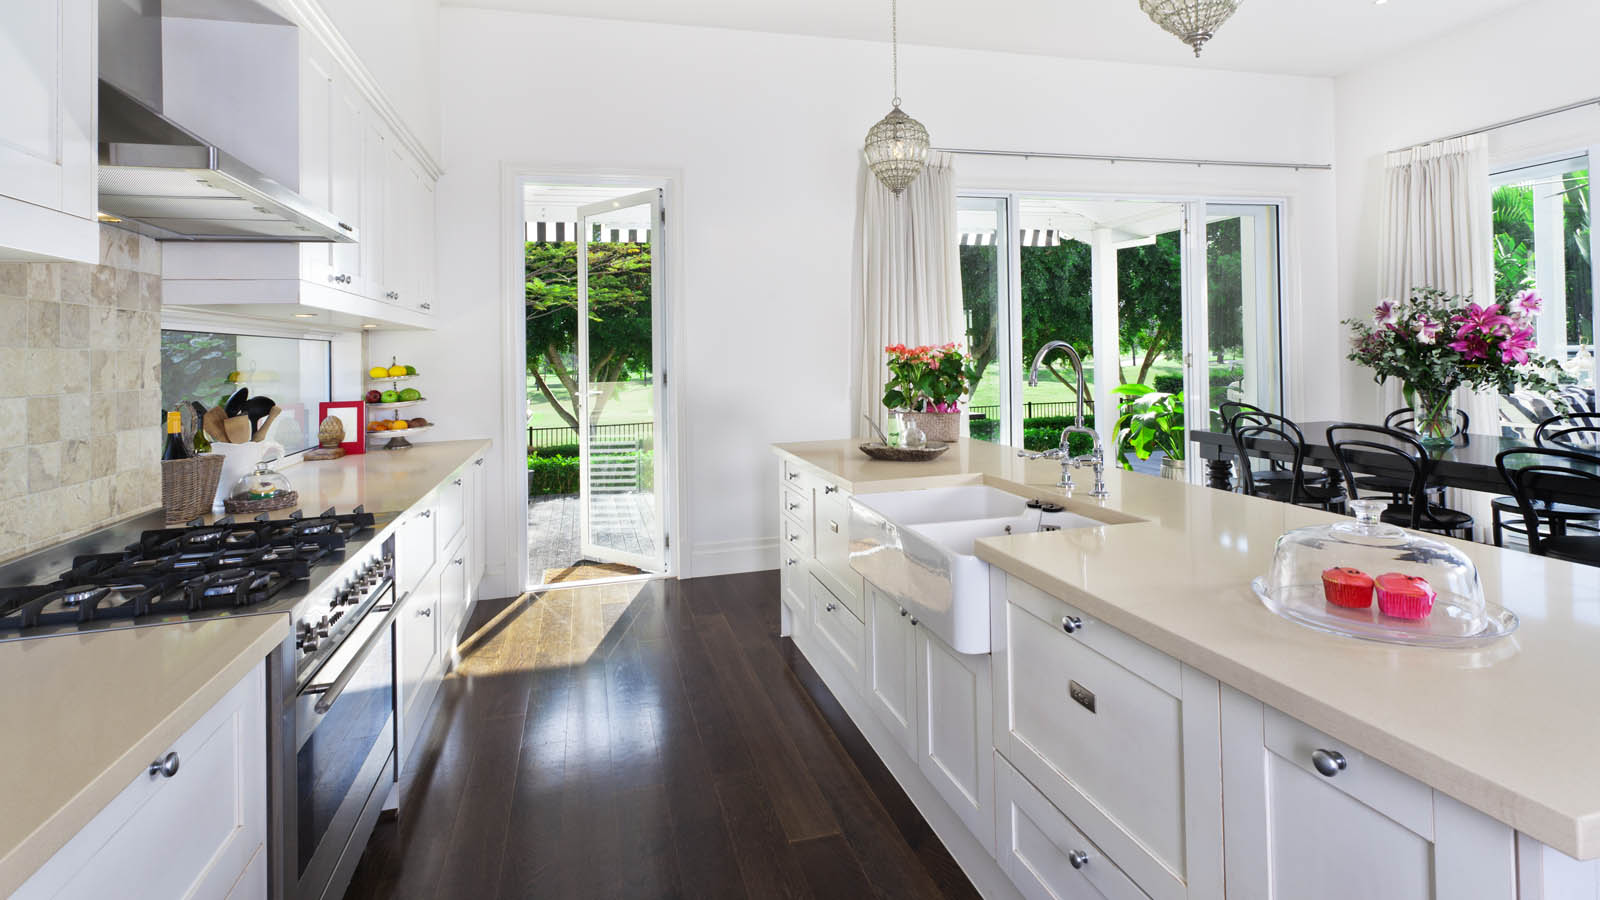 Magnificent Beautiful Kitchens with White Cabinets 1600 x 900 · 186 kB · jpeg